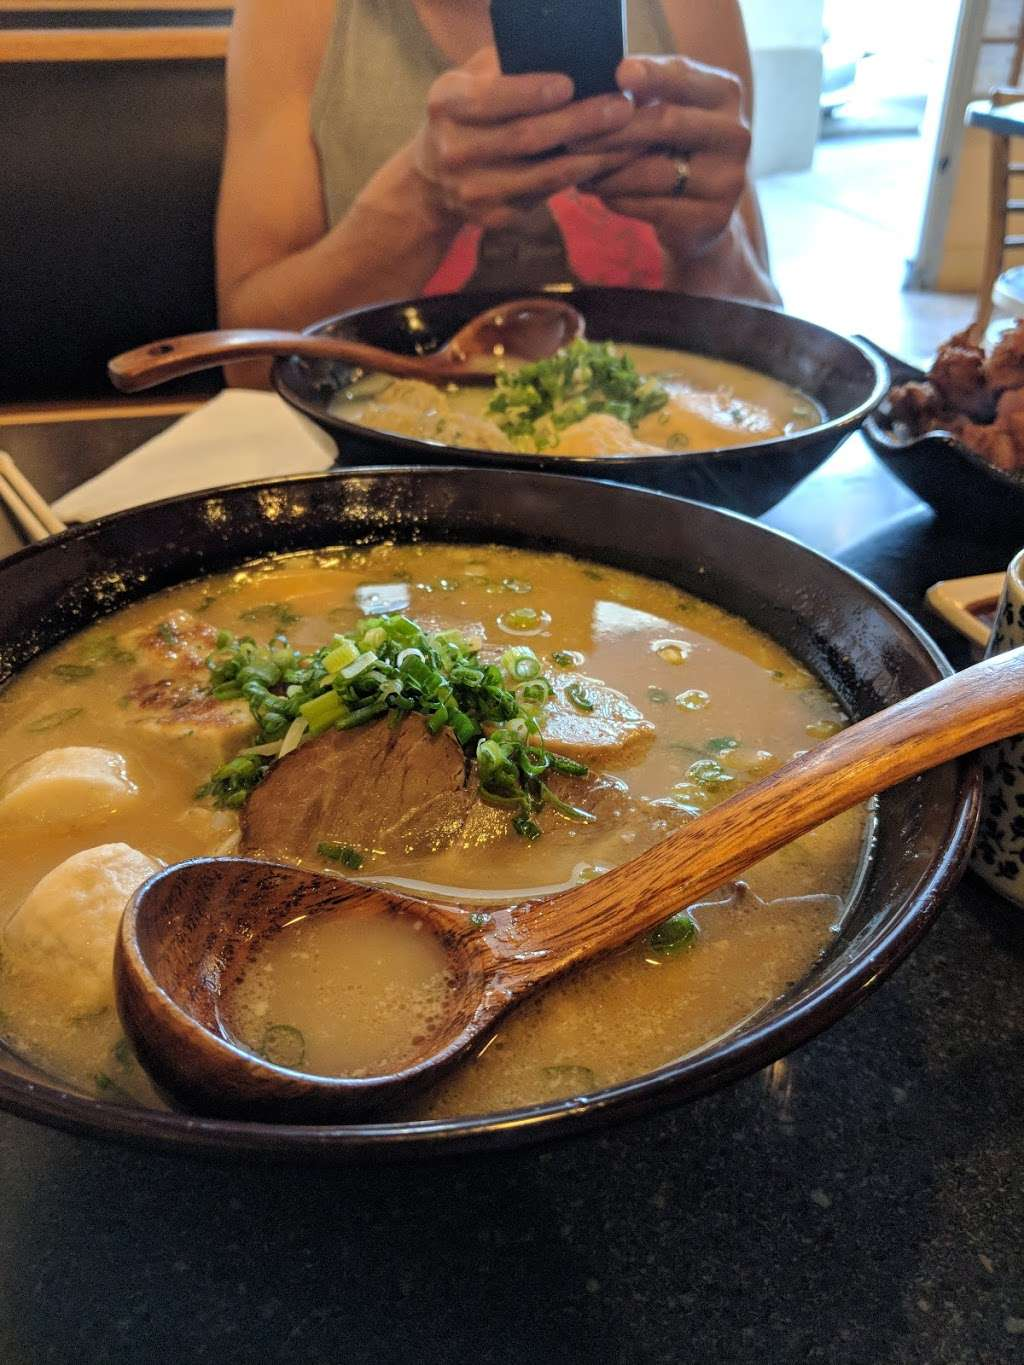 Homi Japanese Ramen - meal takeaway  | Photo 8 of 10 | Address: 1133 Lawrence Expy, Sunnyvale, CA 94089, USA | Phone: (408) 752-0933